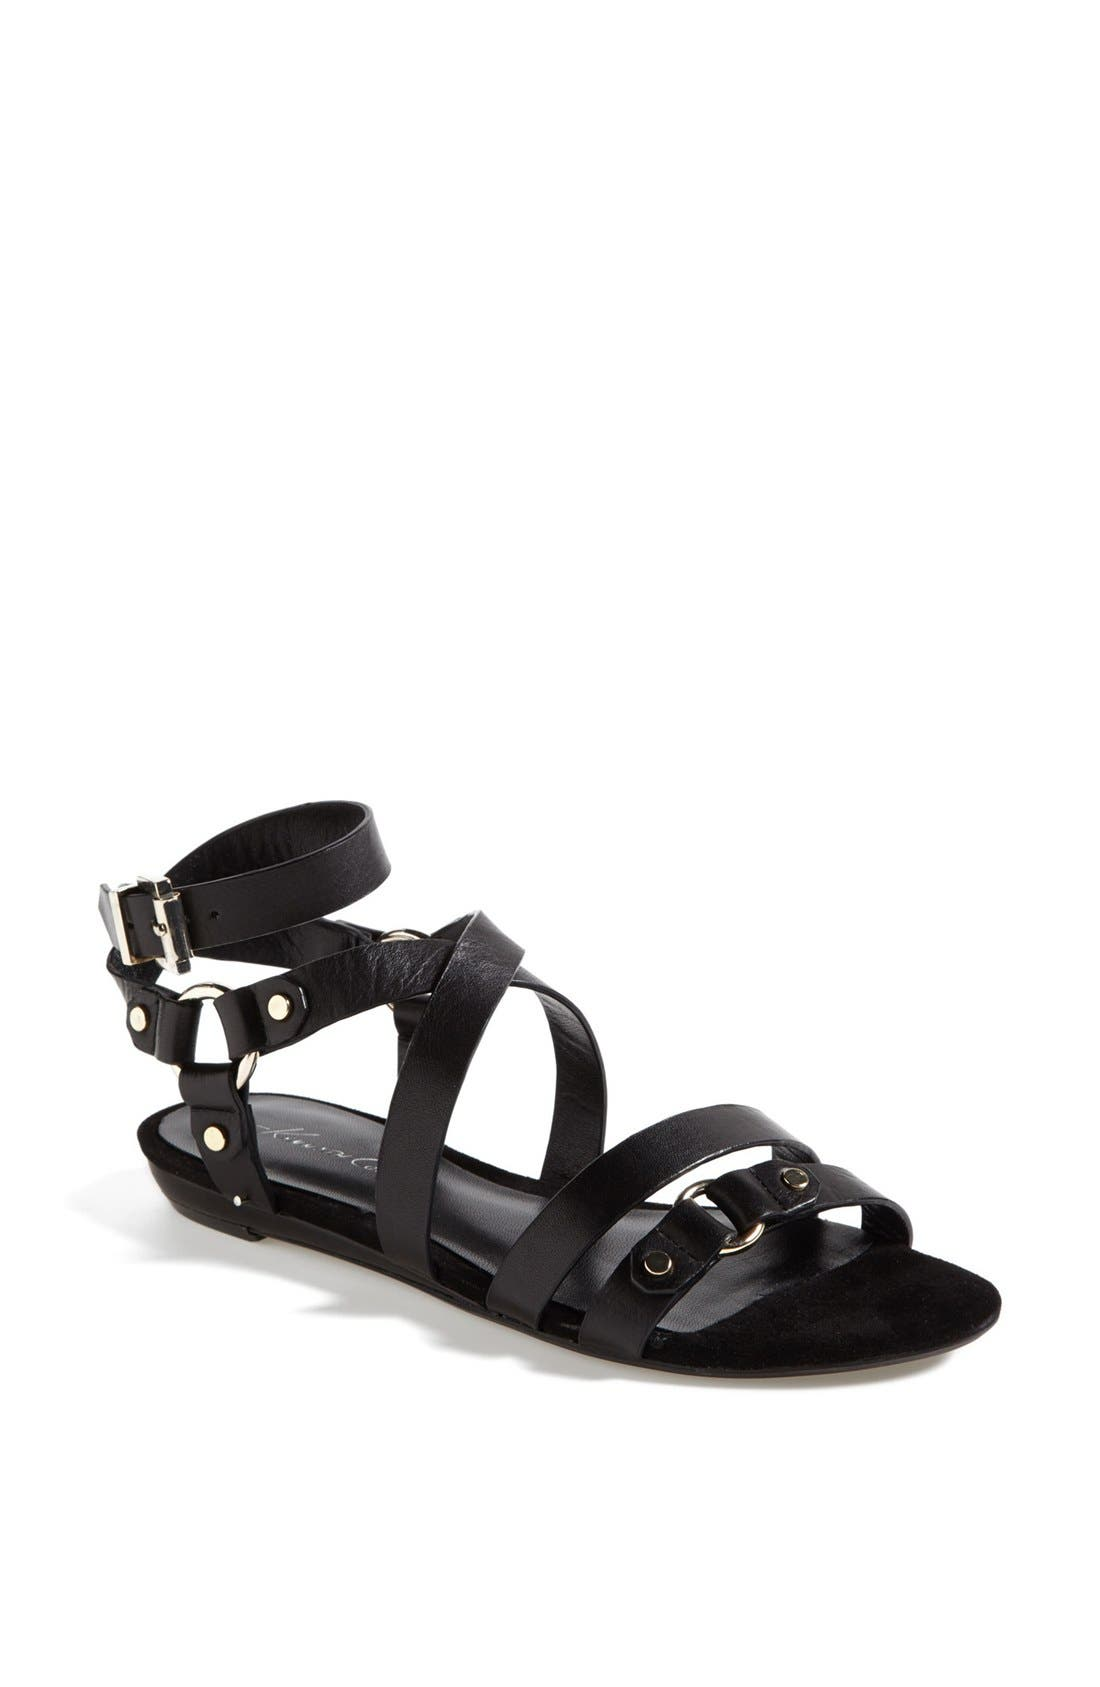 Alternate Image 1 Selected - Kenneth Cole New York 'Exchange' Sandal